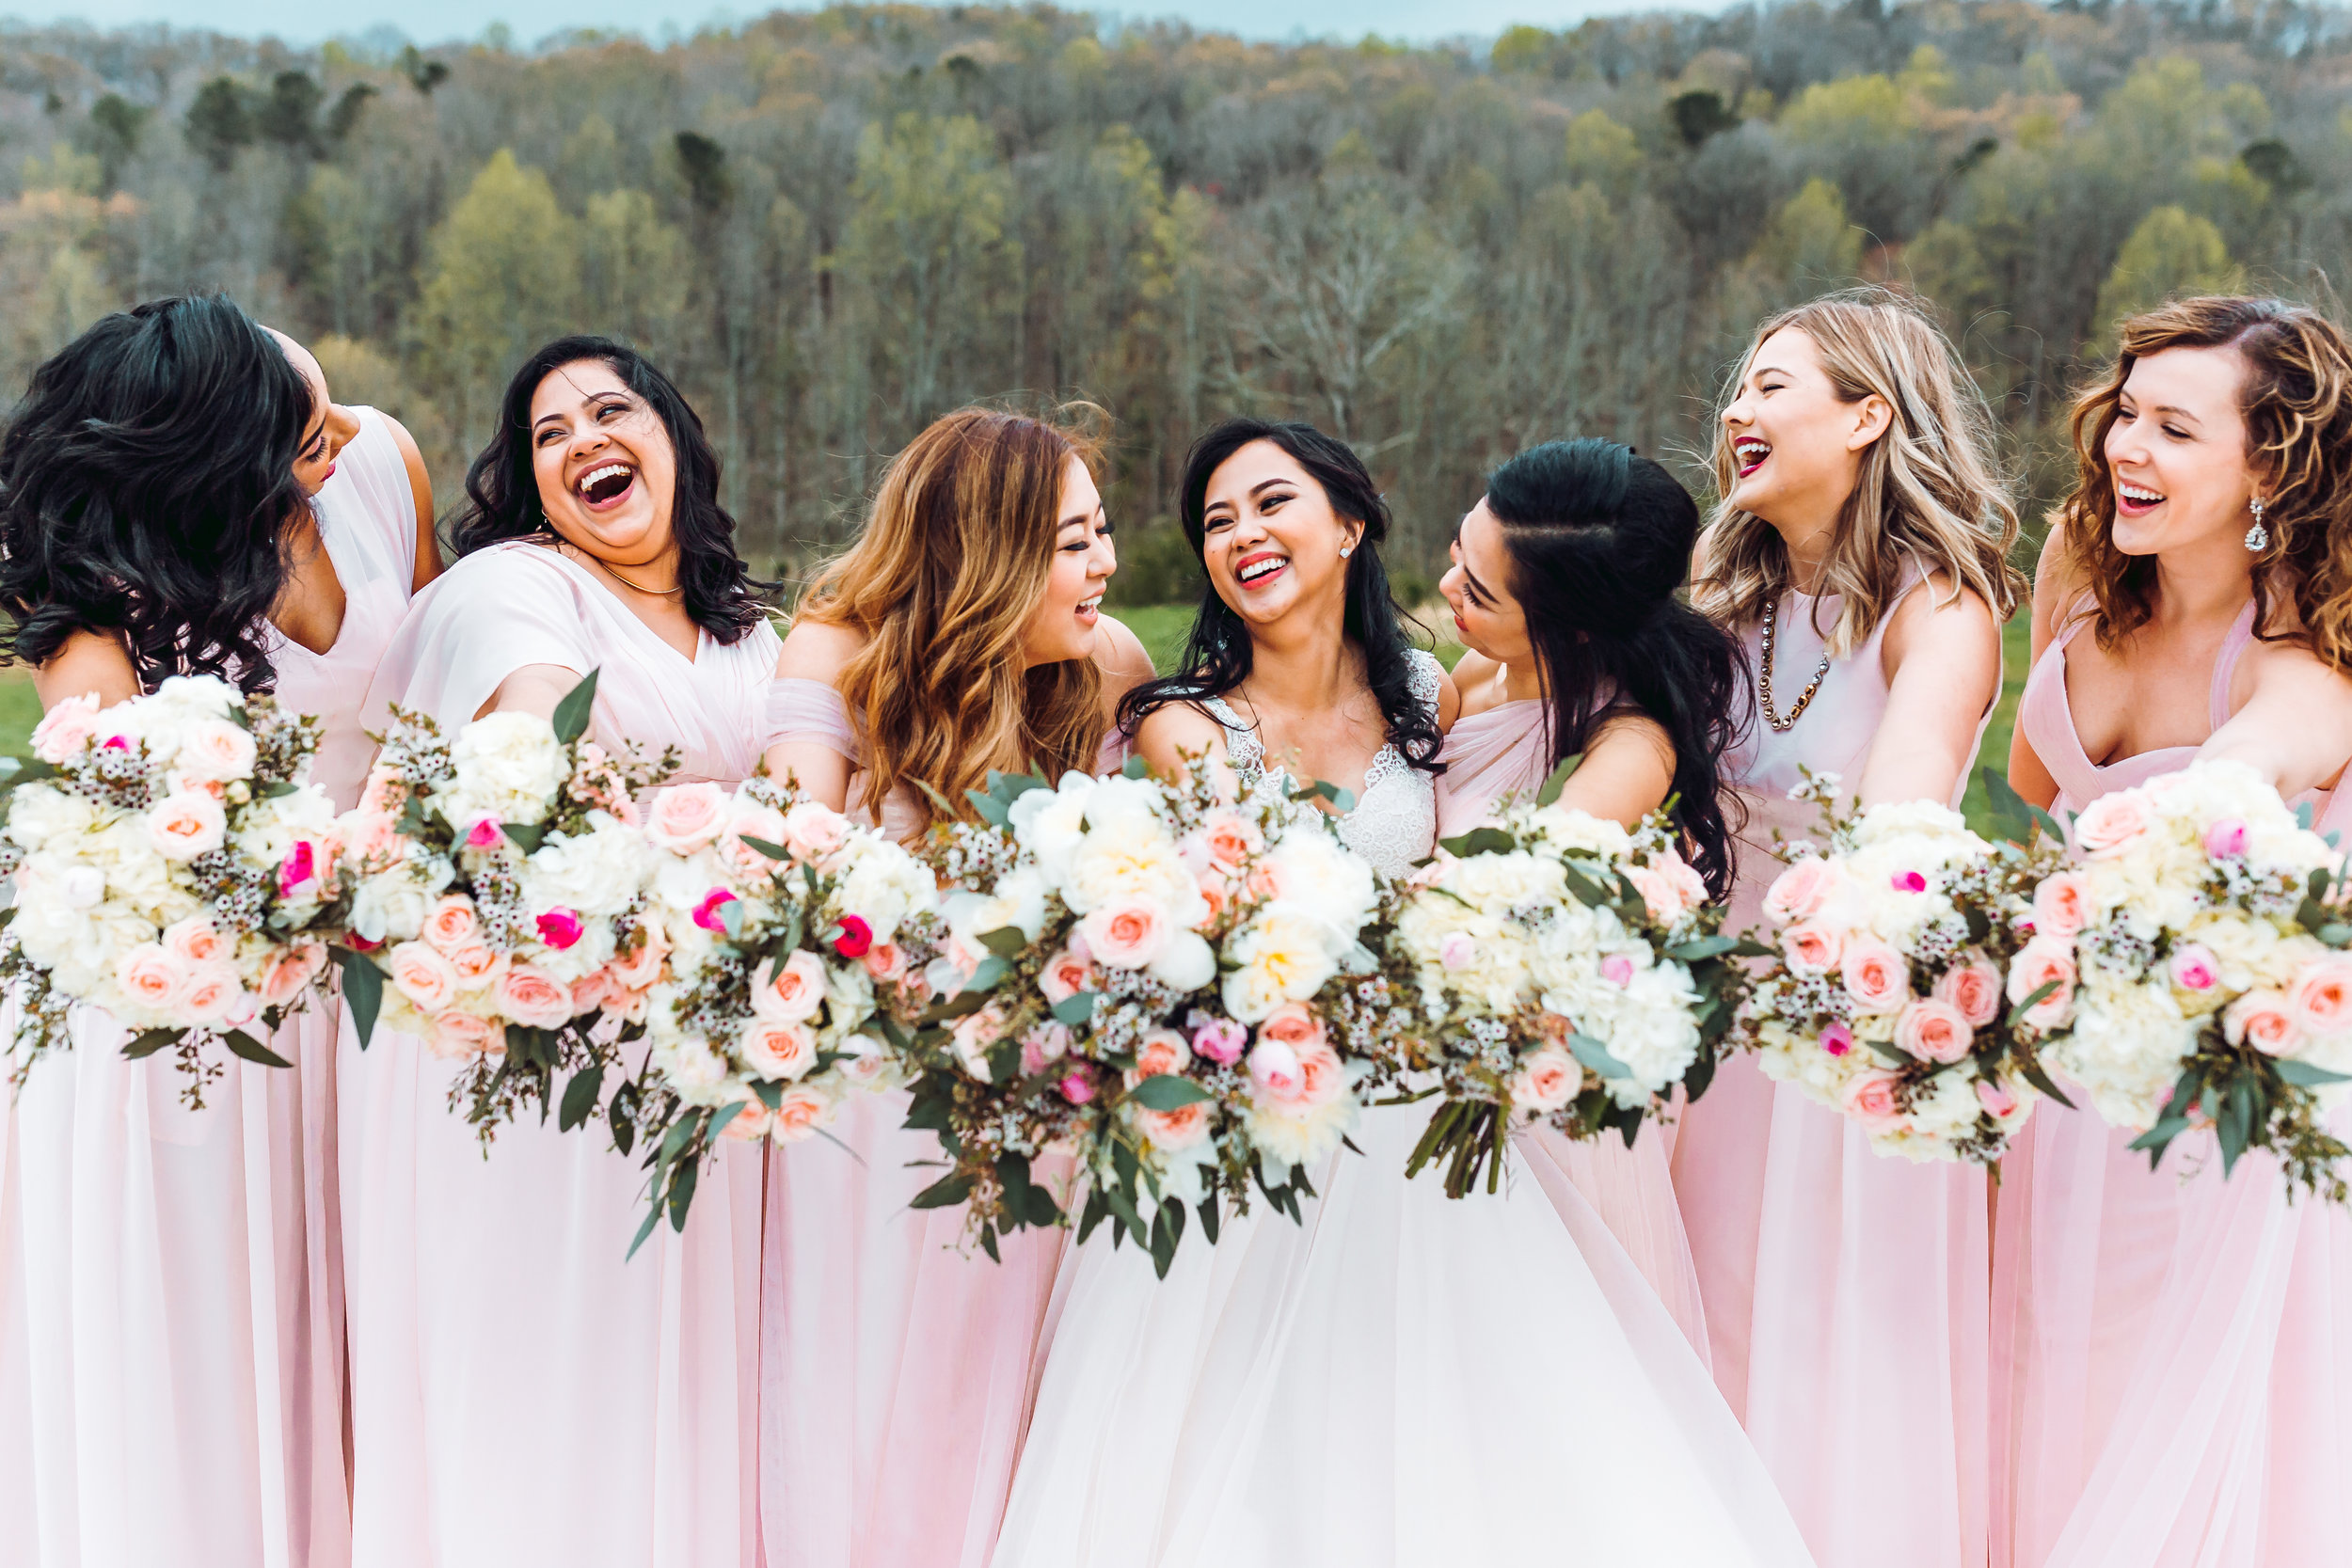 Your options are nearly endless during the Spring months because so many flowers are in season. These bouquets complement the chiffon dresses perfectly and consist of white hydrangea, pink spray roses, pink ranunculus and blush waxflower.